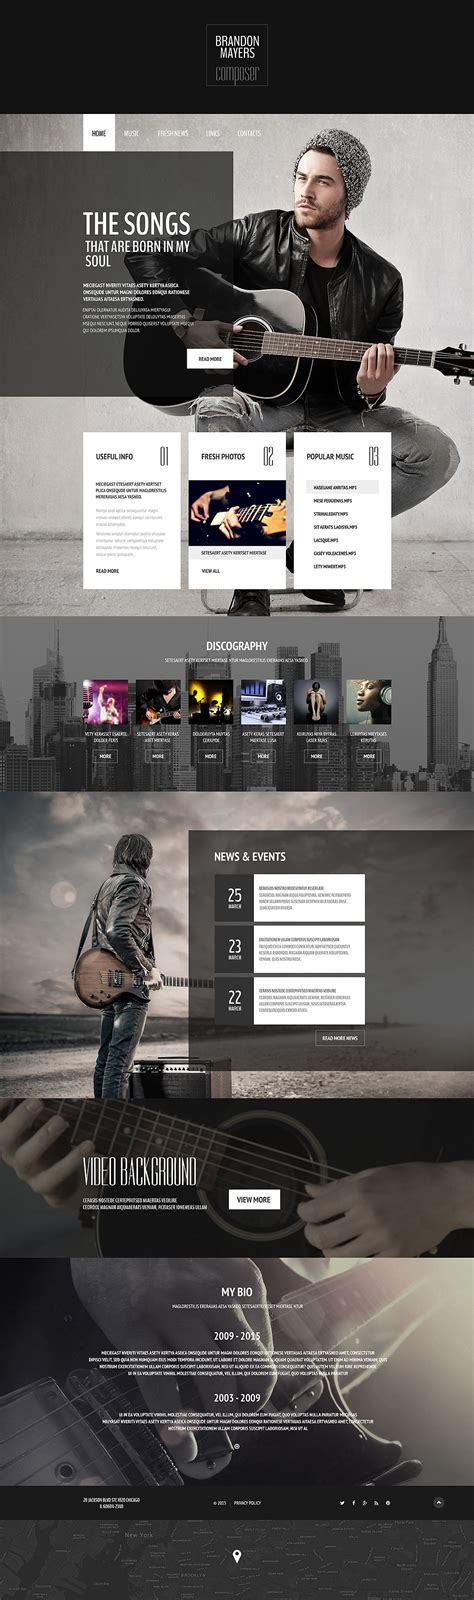 Top 10 Personal Page Web Templates Free Templates Online Portfolio Web Page Template